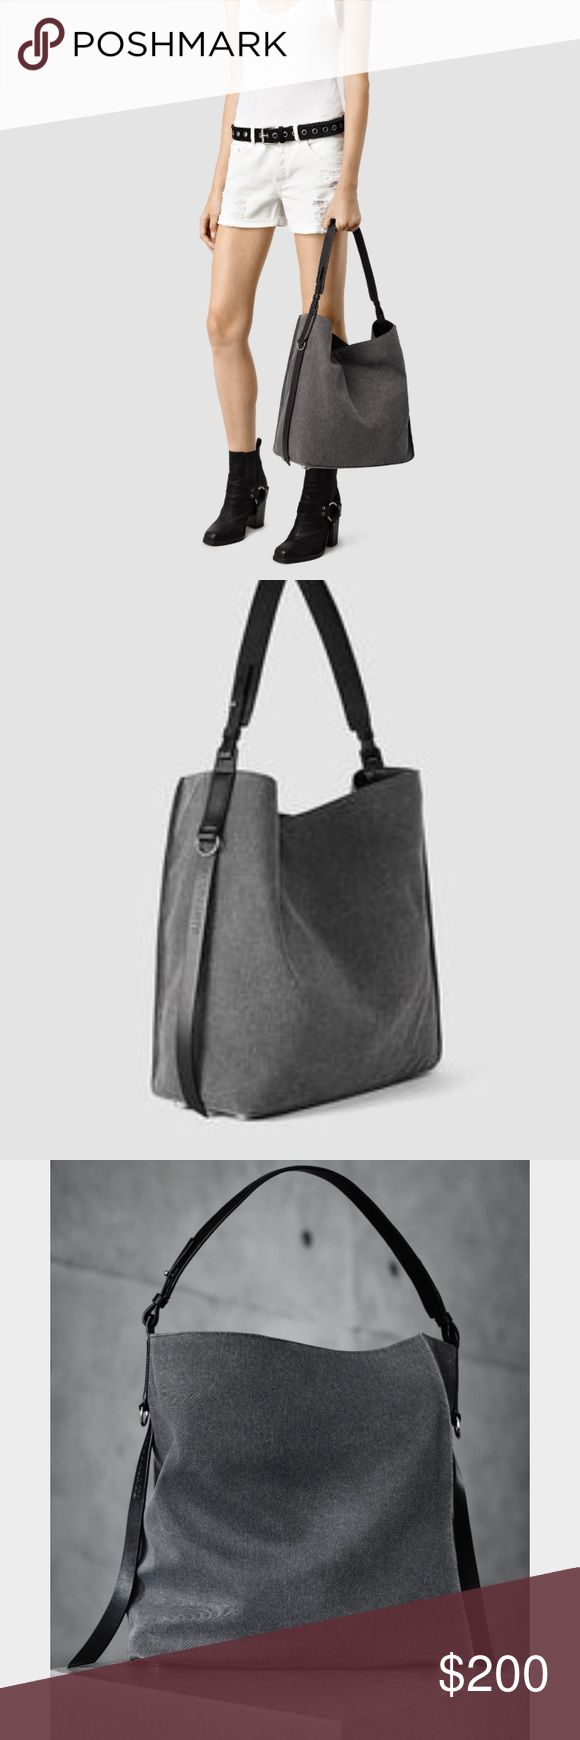 NWT Allsaints bag 💼 😜 Paradise north south bad. Color is grey with black leather straps. Looking to sell no trades !! Including dust bag. All Saints Bags Shoulder Bags